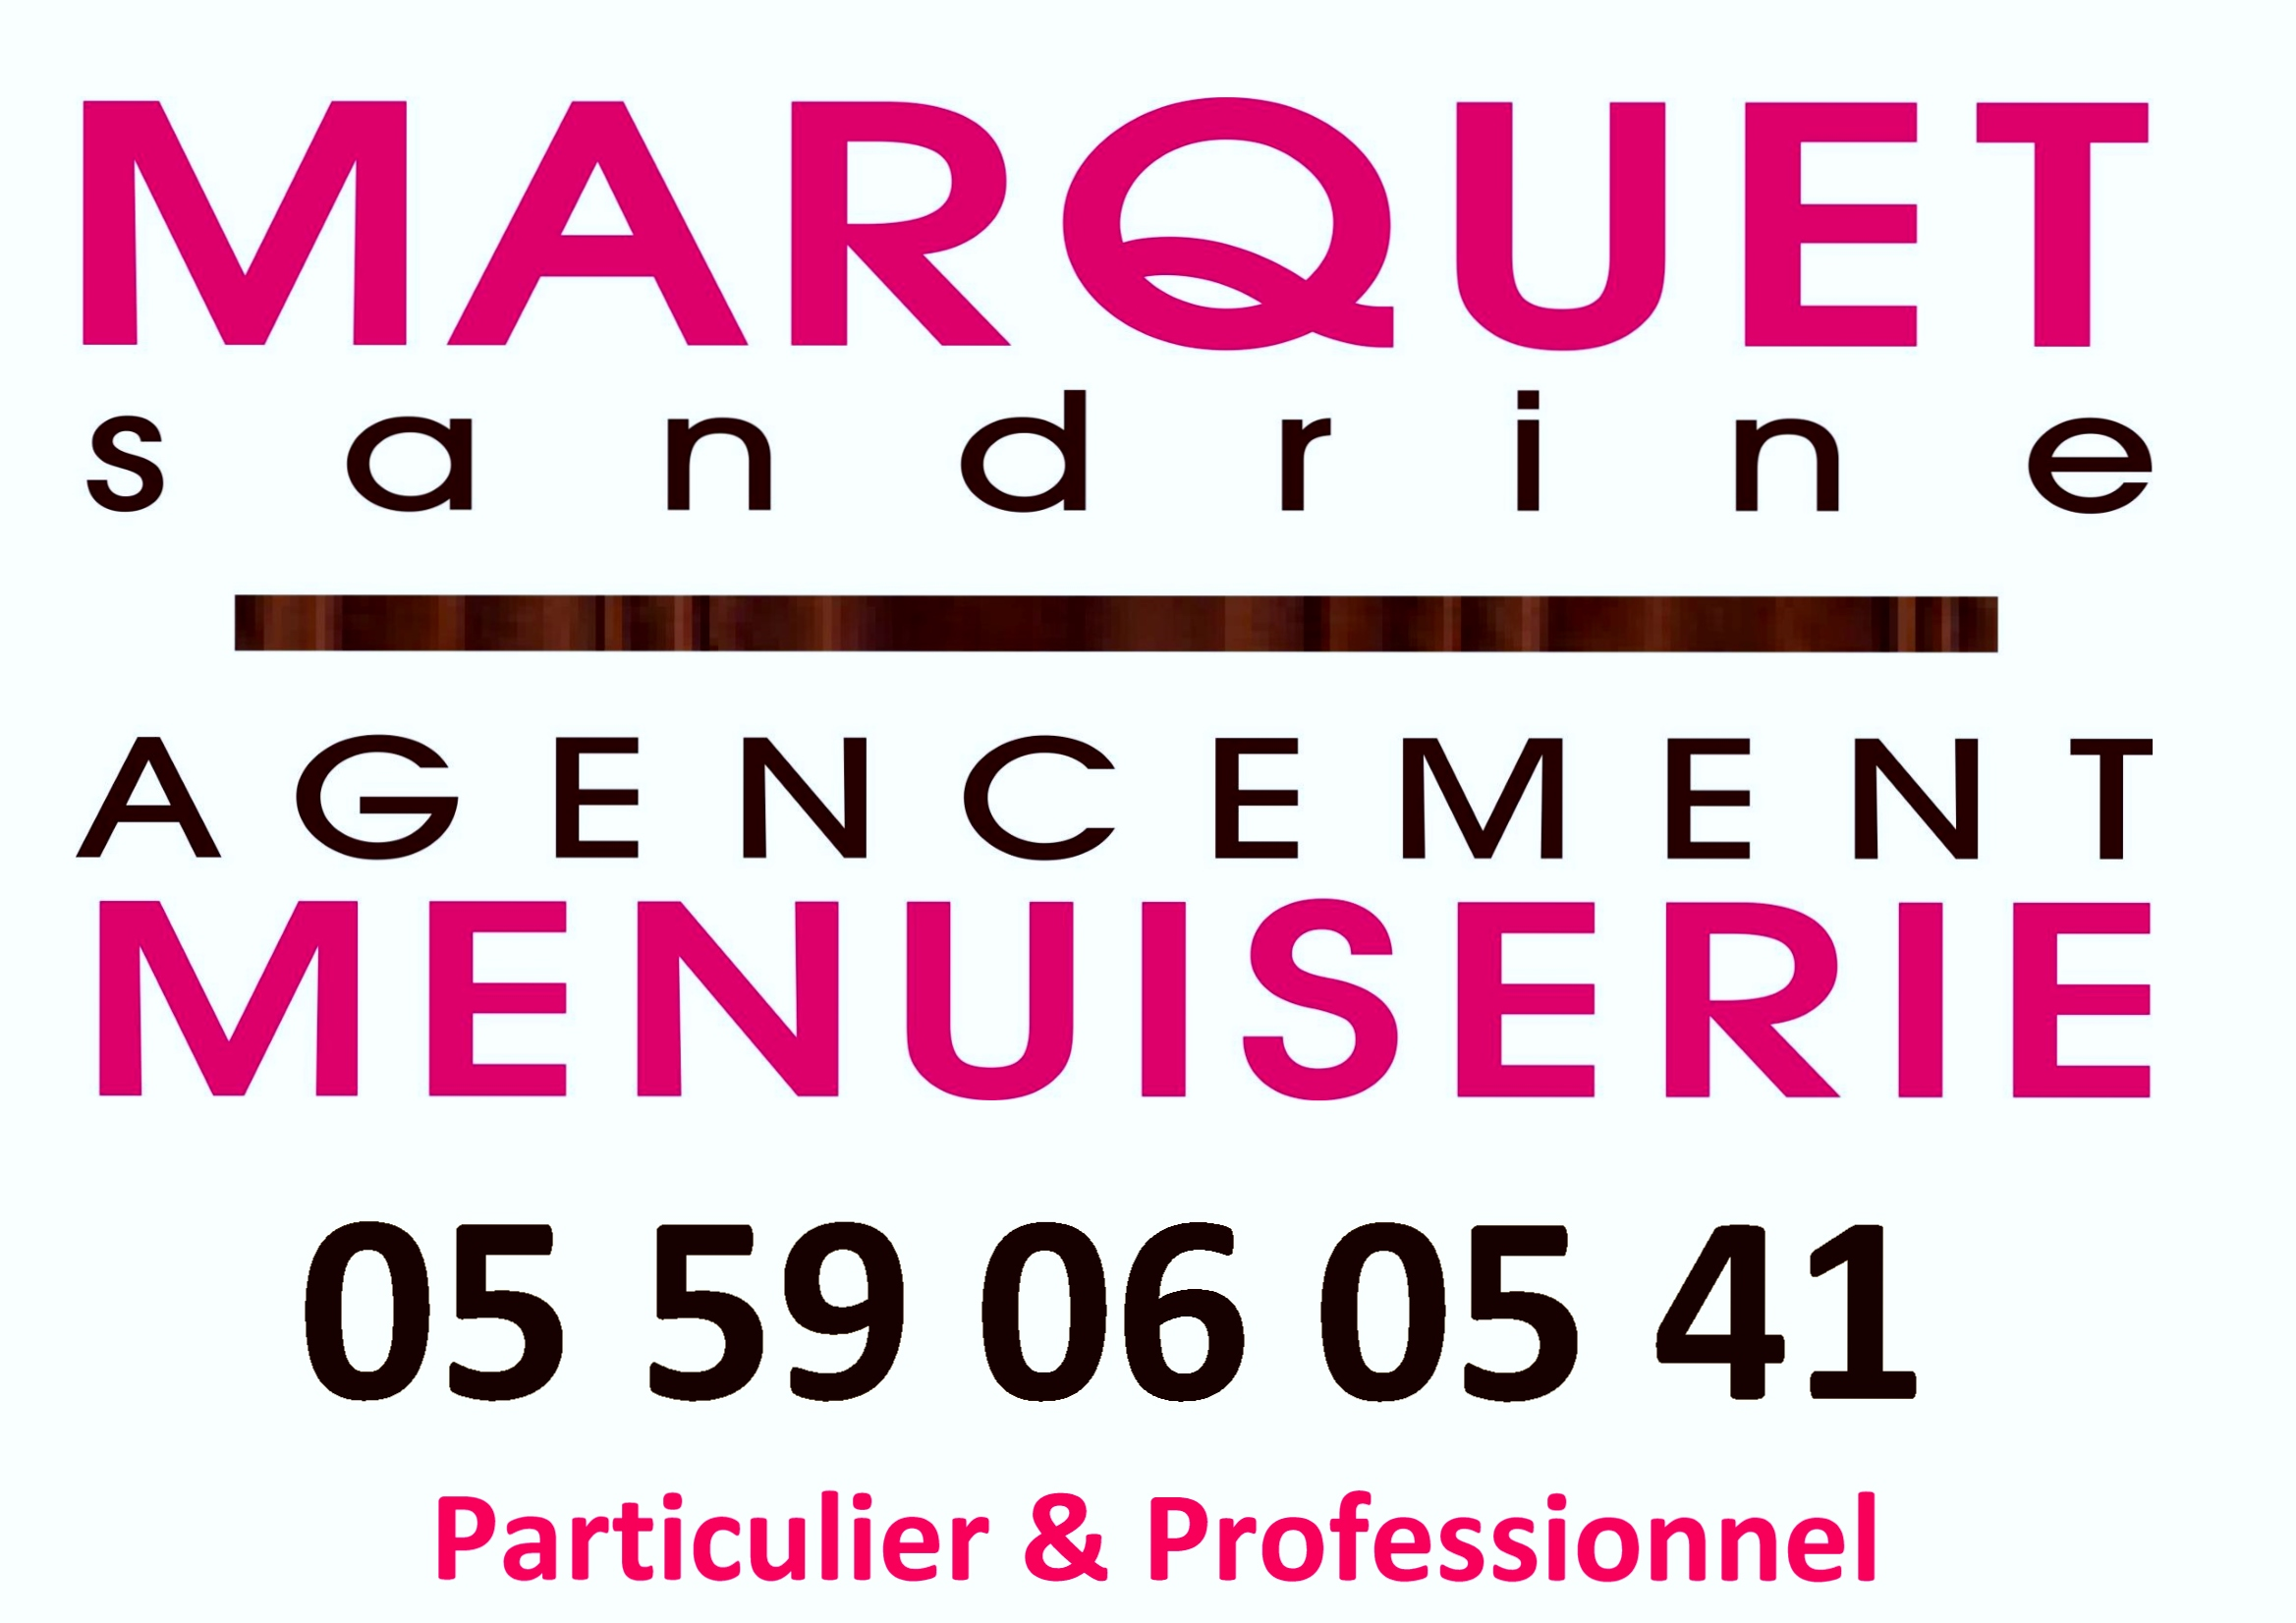 MARQUET-PANNEAU-PUB